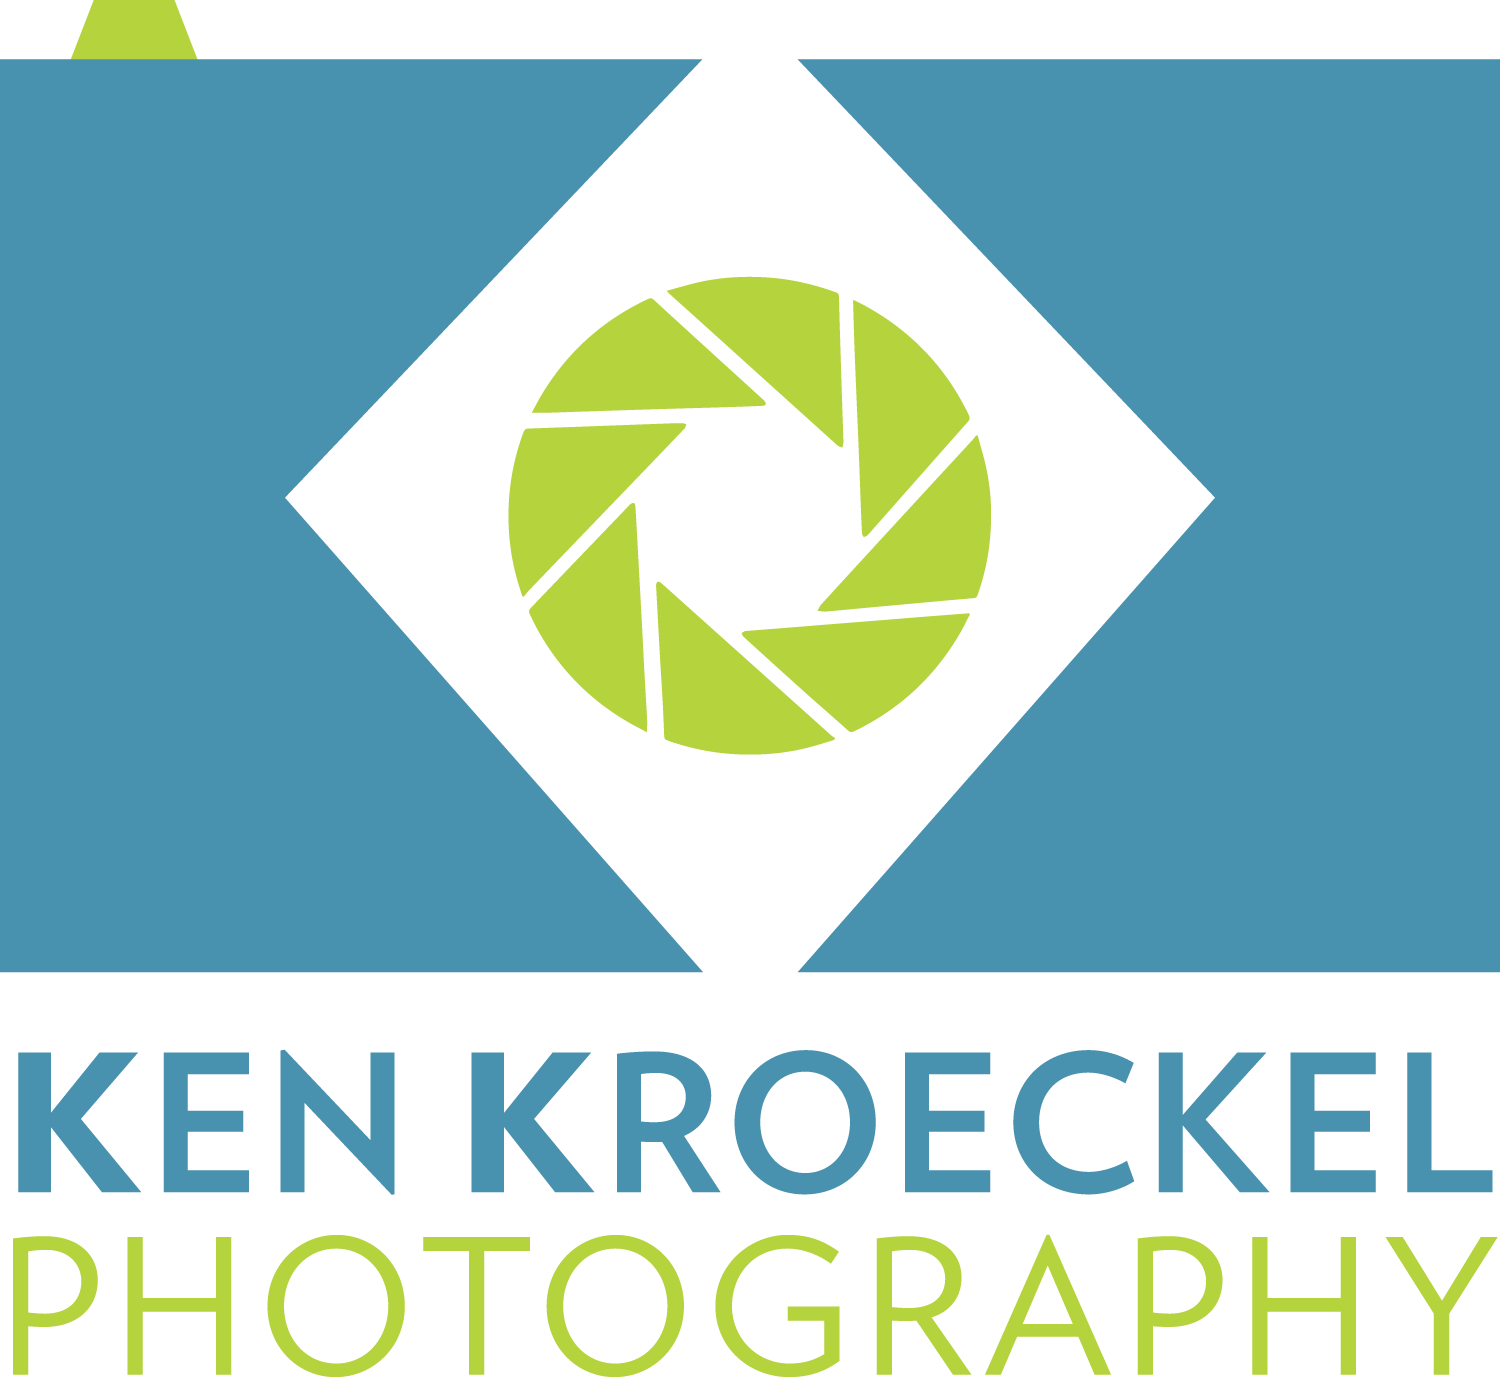 Ken Kroeckel Photography